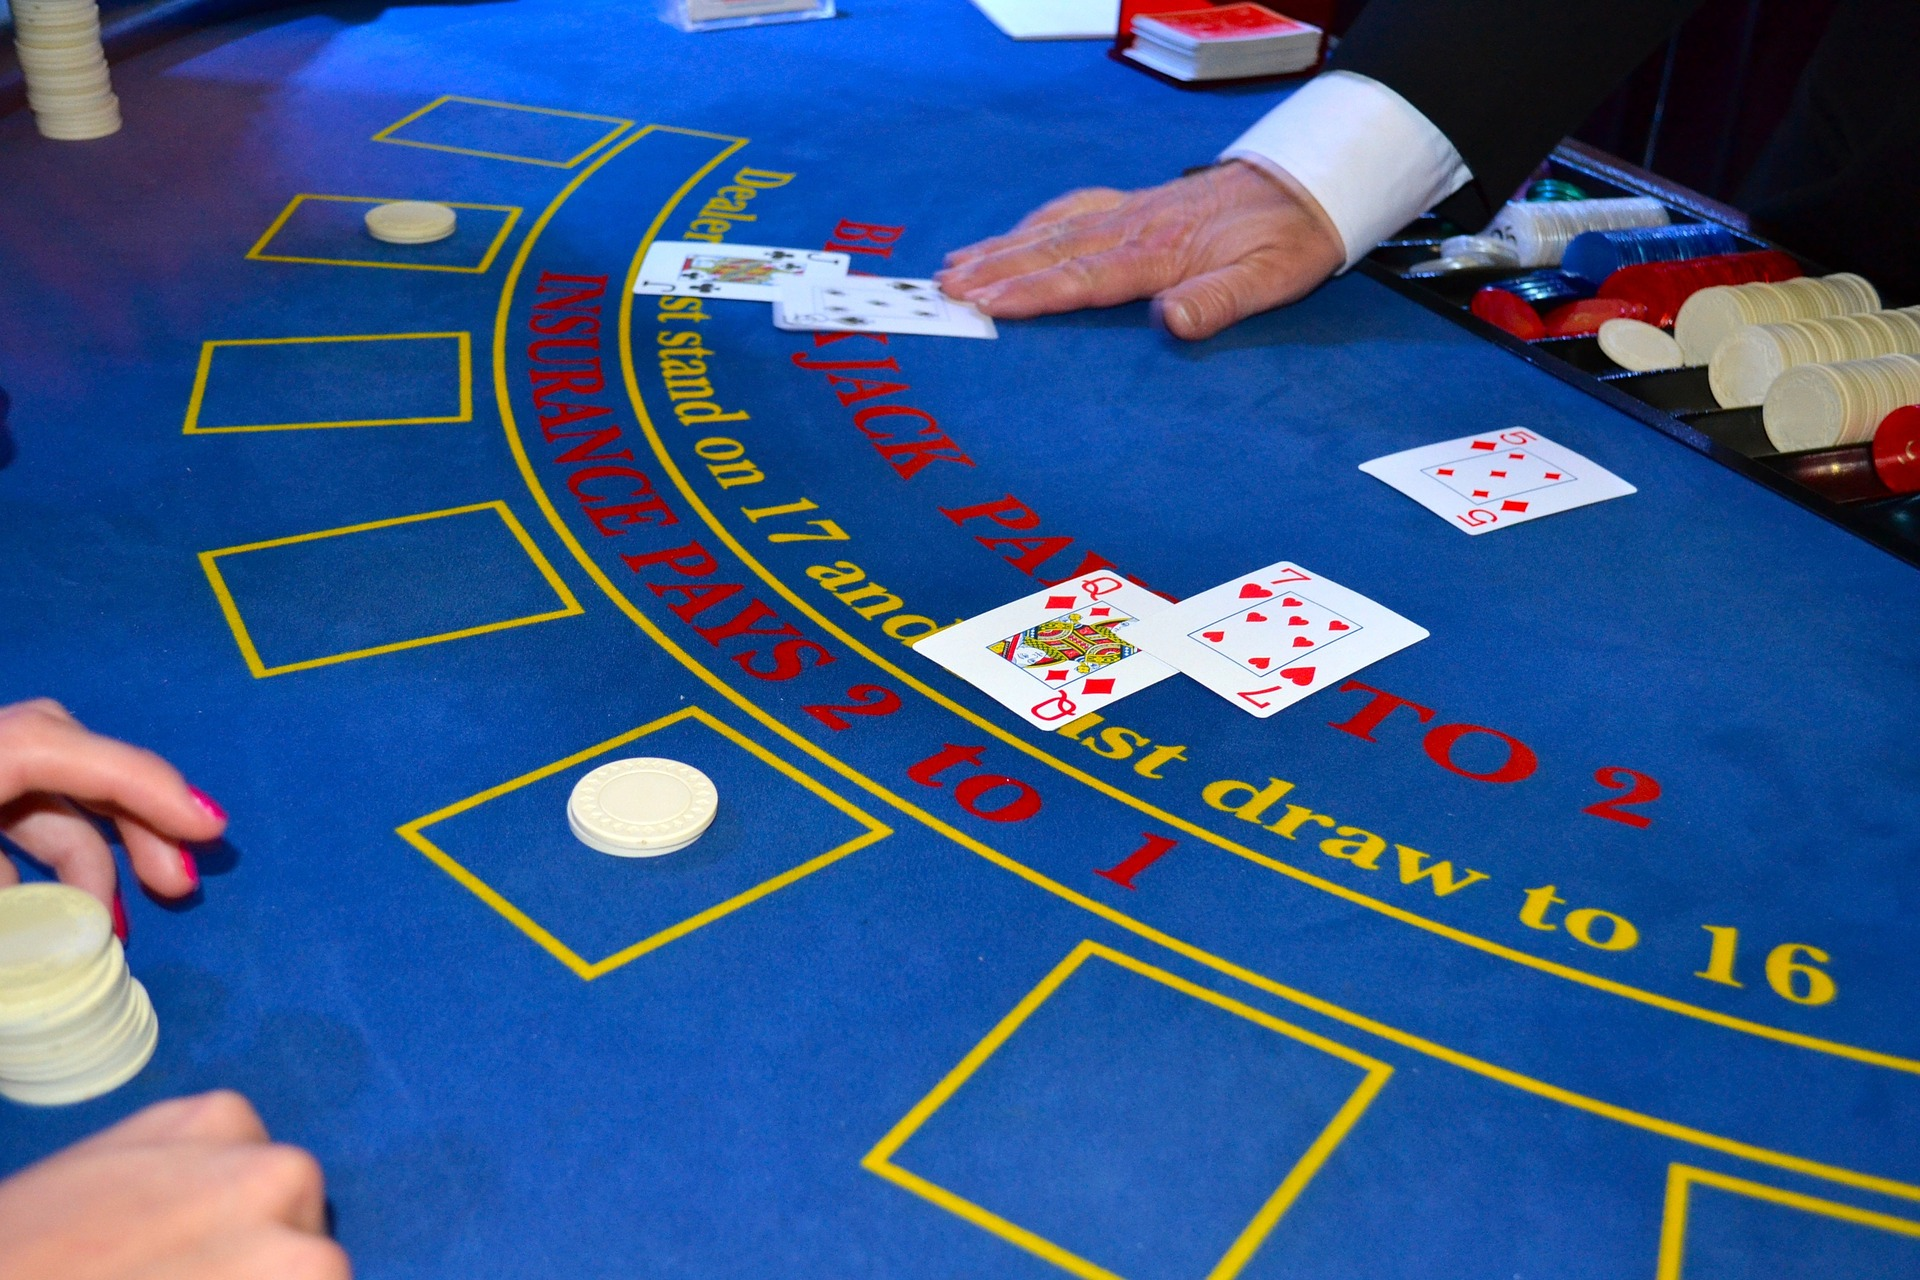 Indian gaming revenue dropped 19.5 percent in 2020